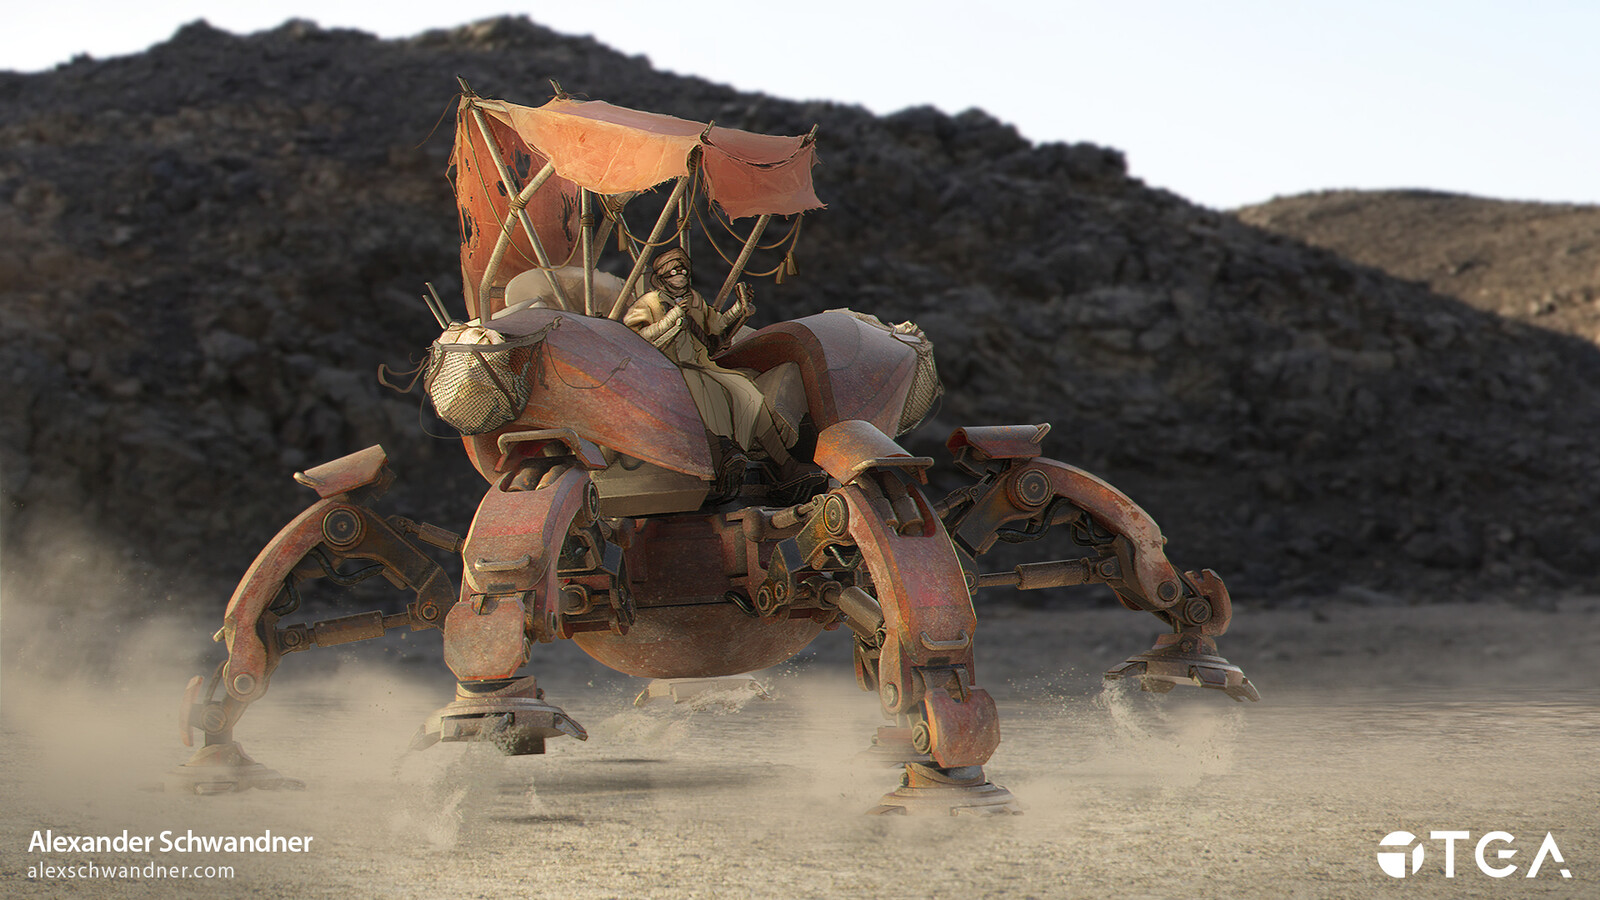 A personnel carrier used by nomads on a distant desert planet.